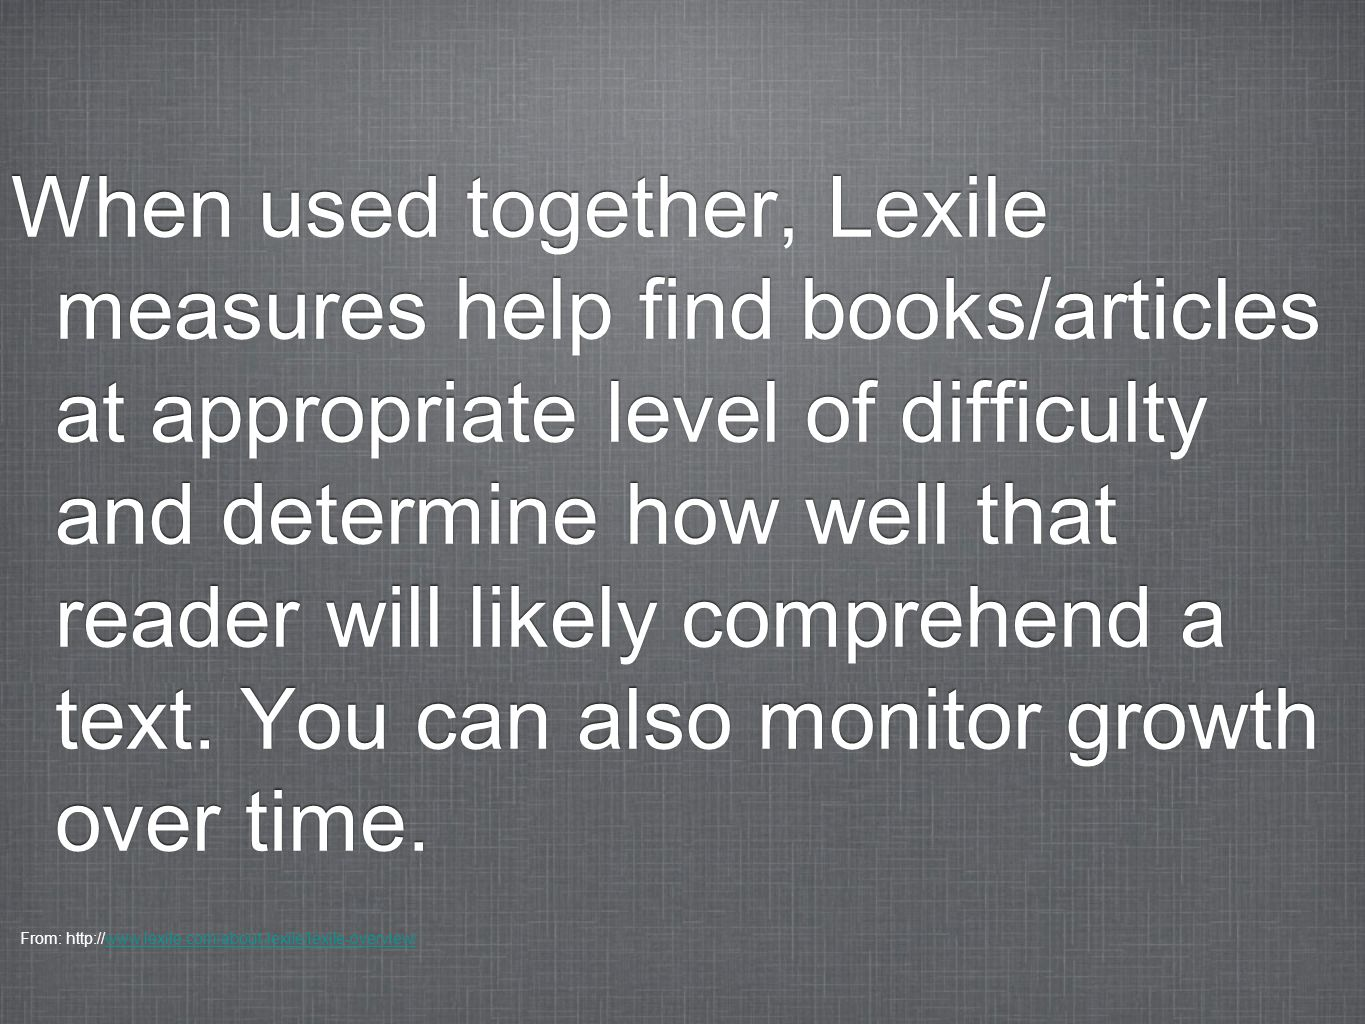 When used together, Lexile measures help find books/articles at appropriate level of difficulty and determine how well that reader will likely compreh